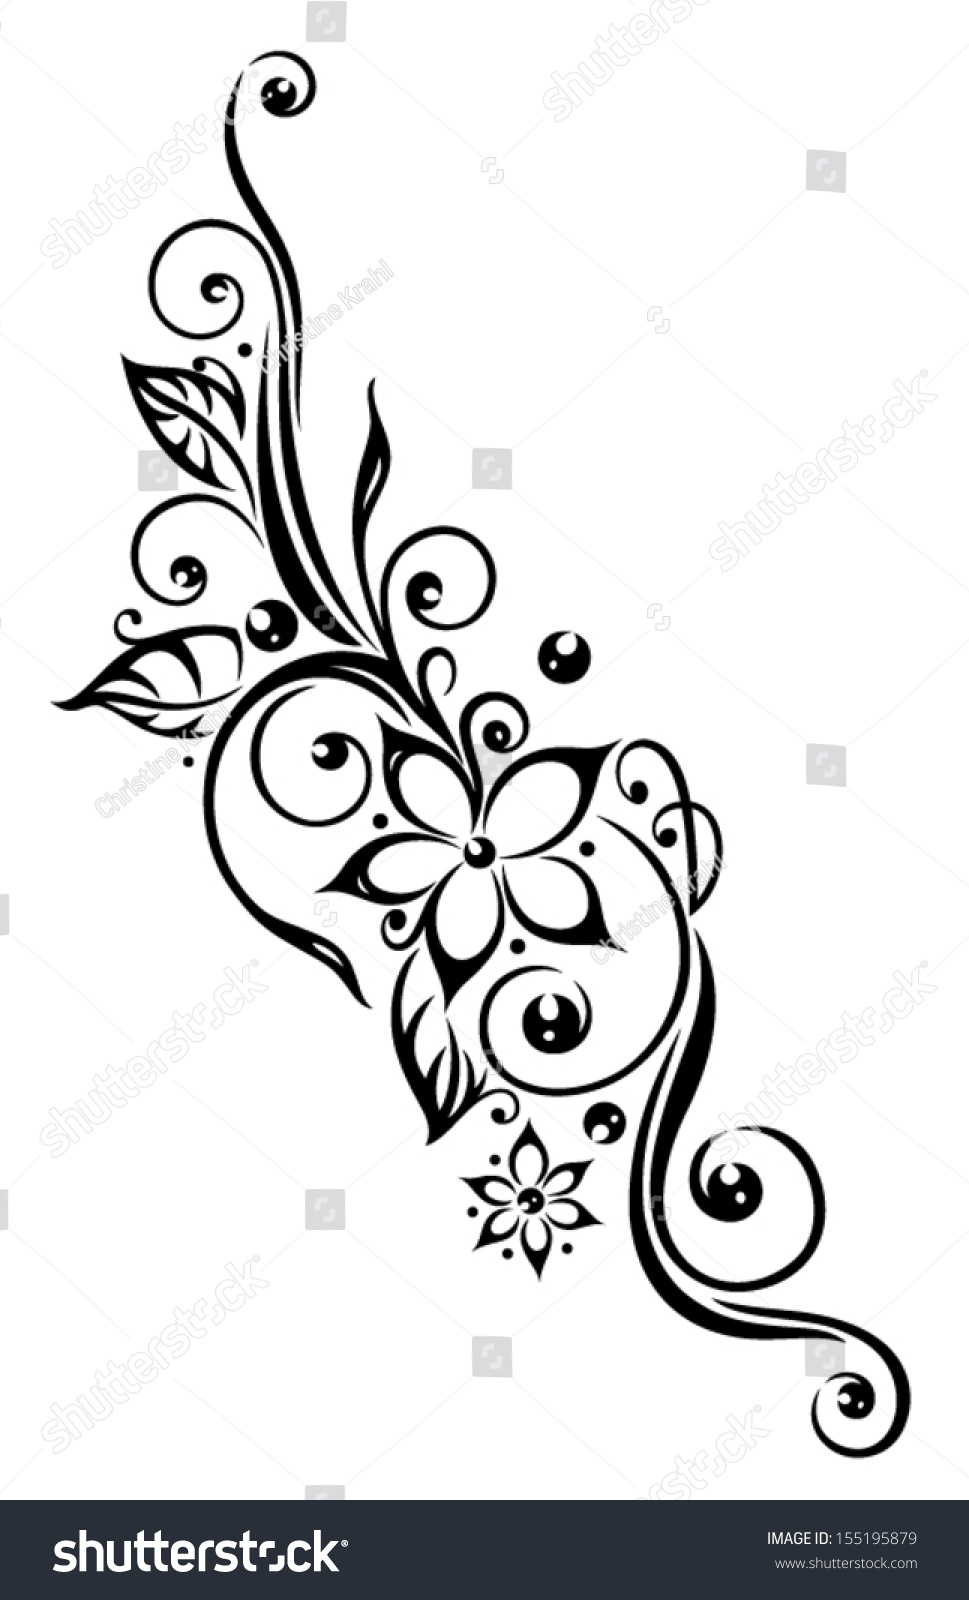 Black Flowers Illustration Tribal Tattoo Style 155195879